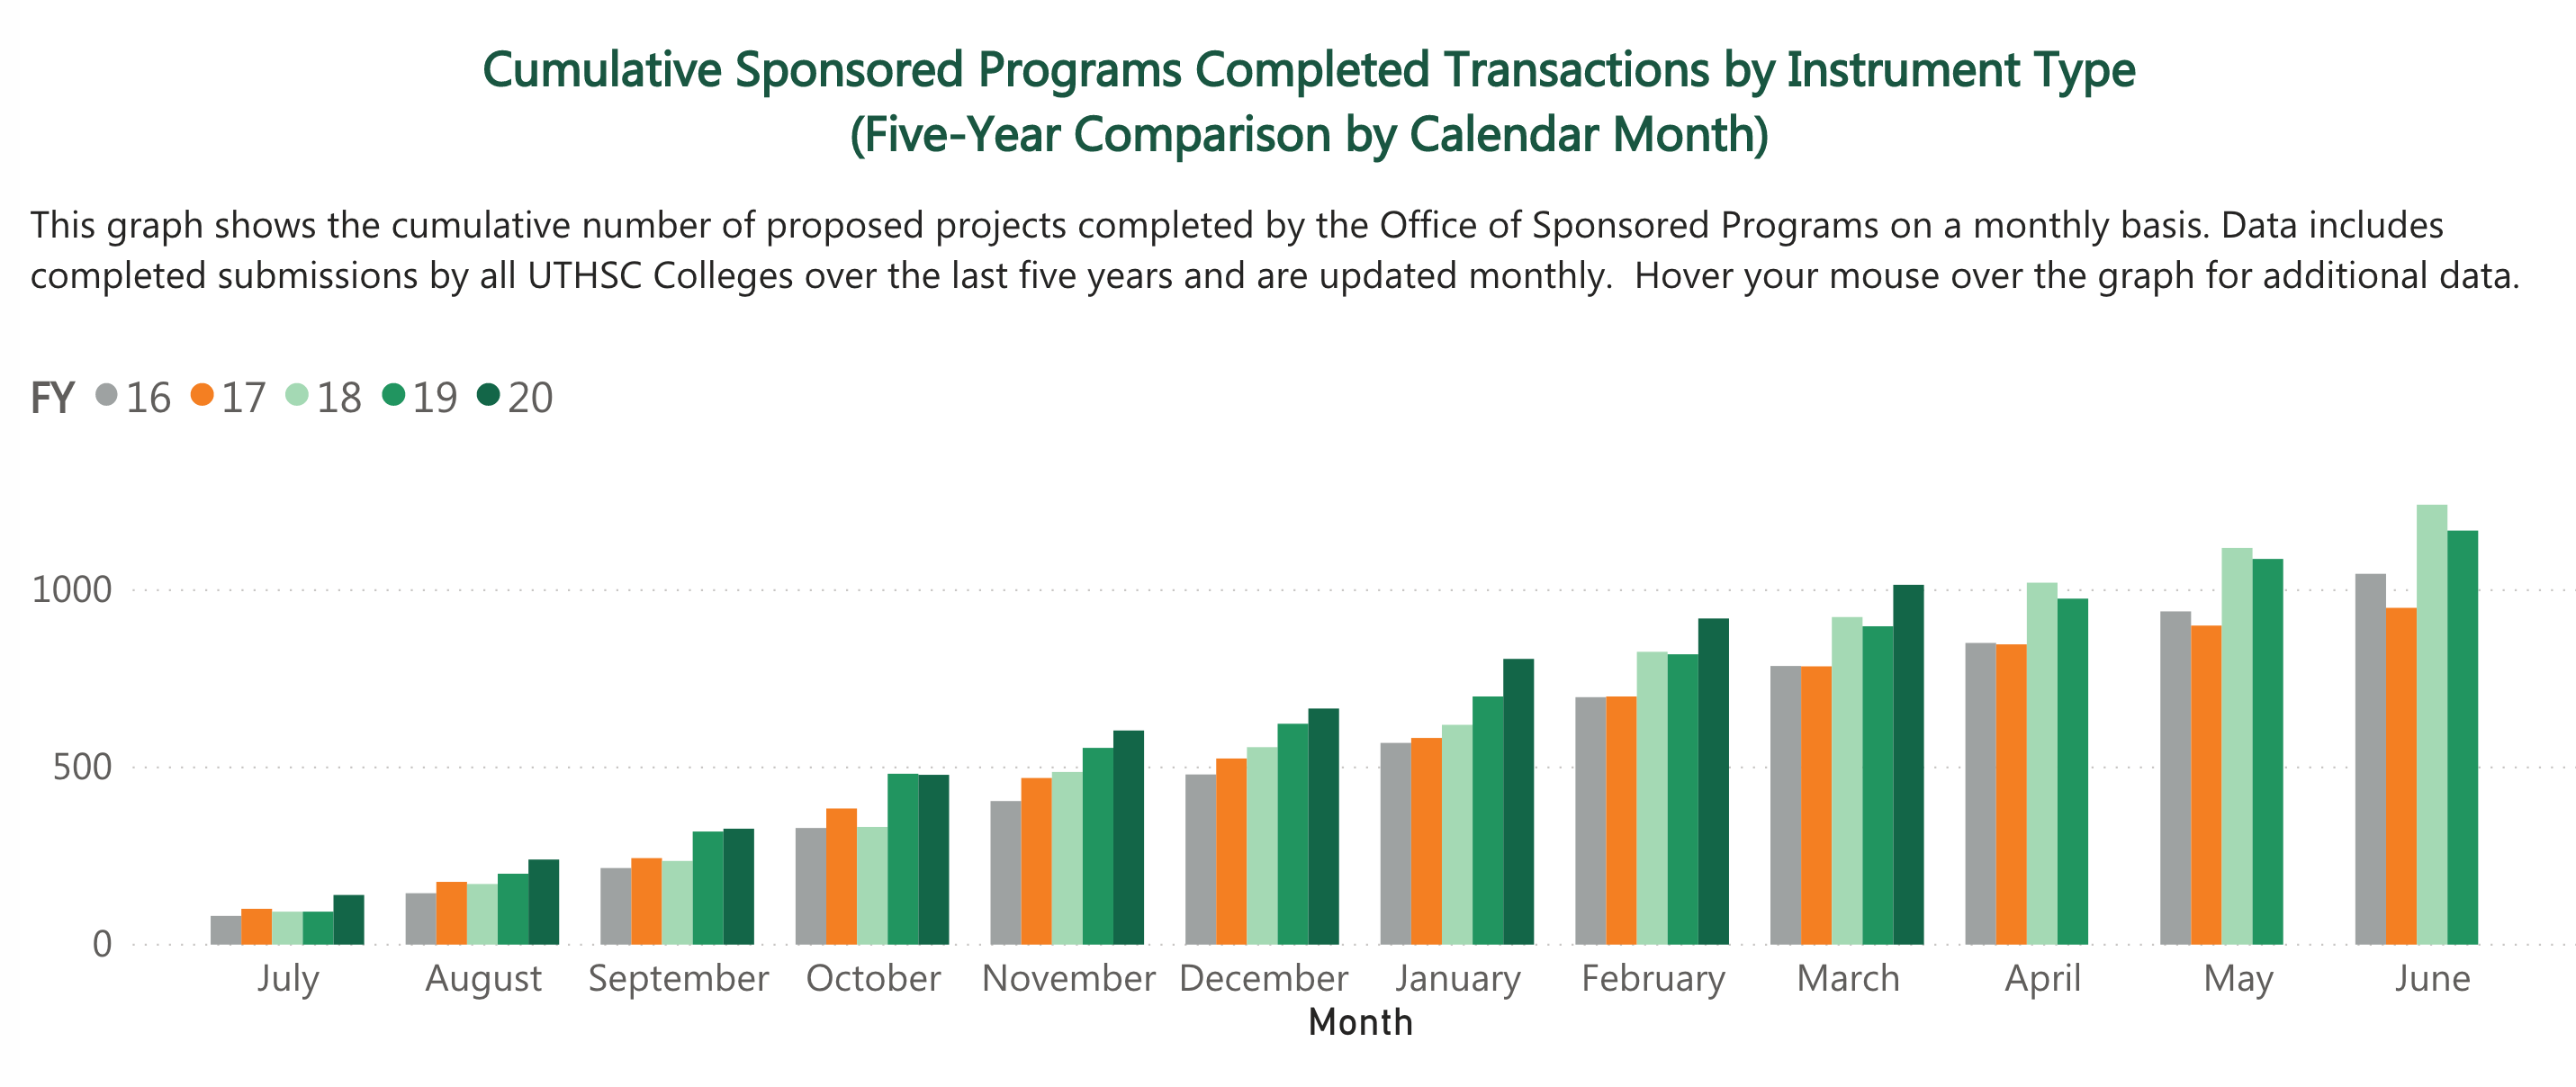 Cumulative Sponsored Programs Completed Transactions by Instrument Type (Five-Year Comparison by Calendar Month)